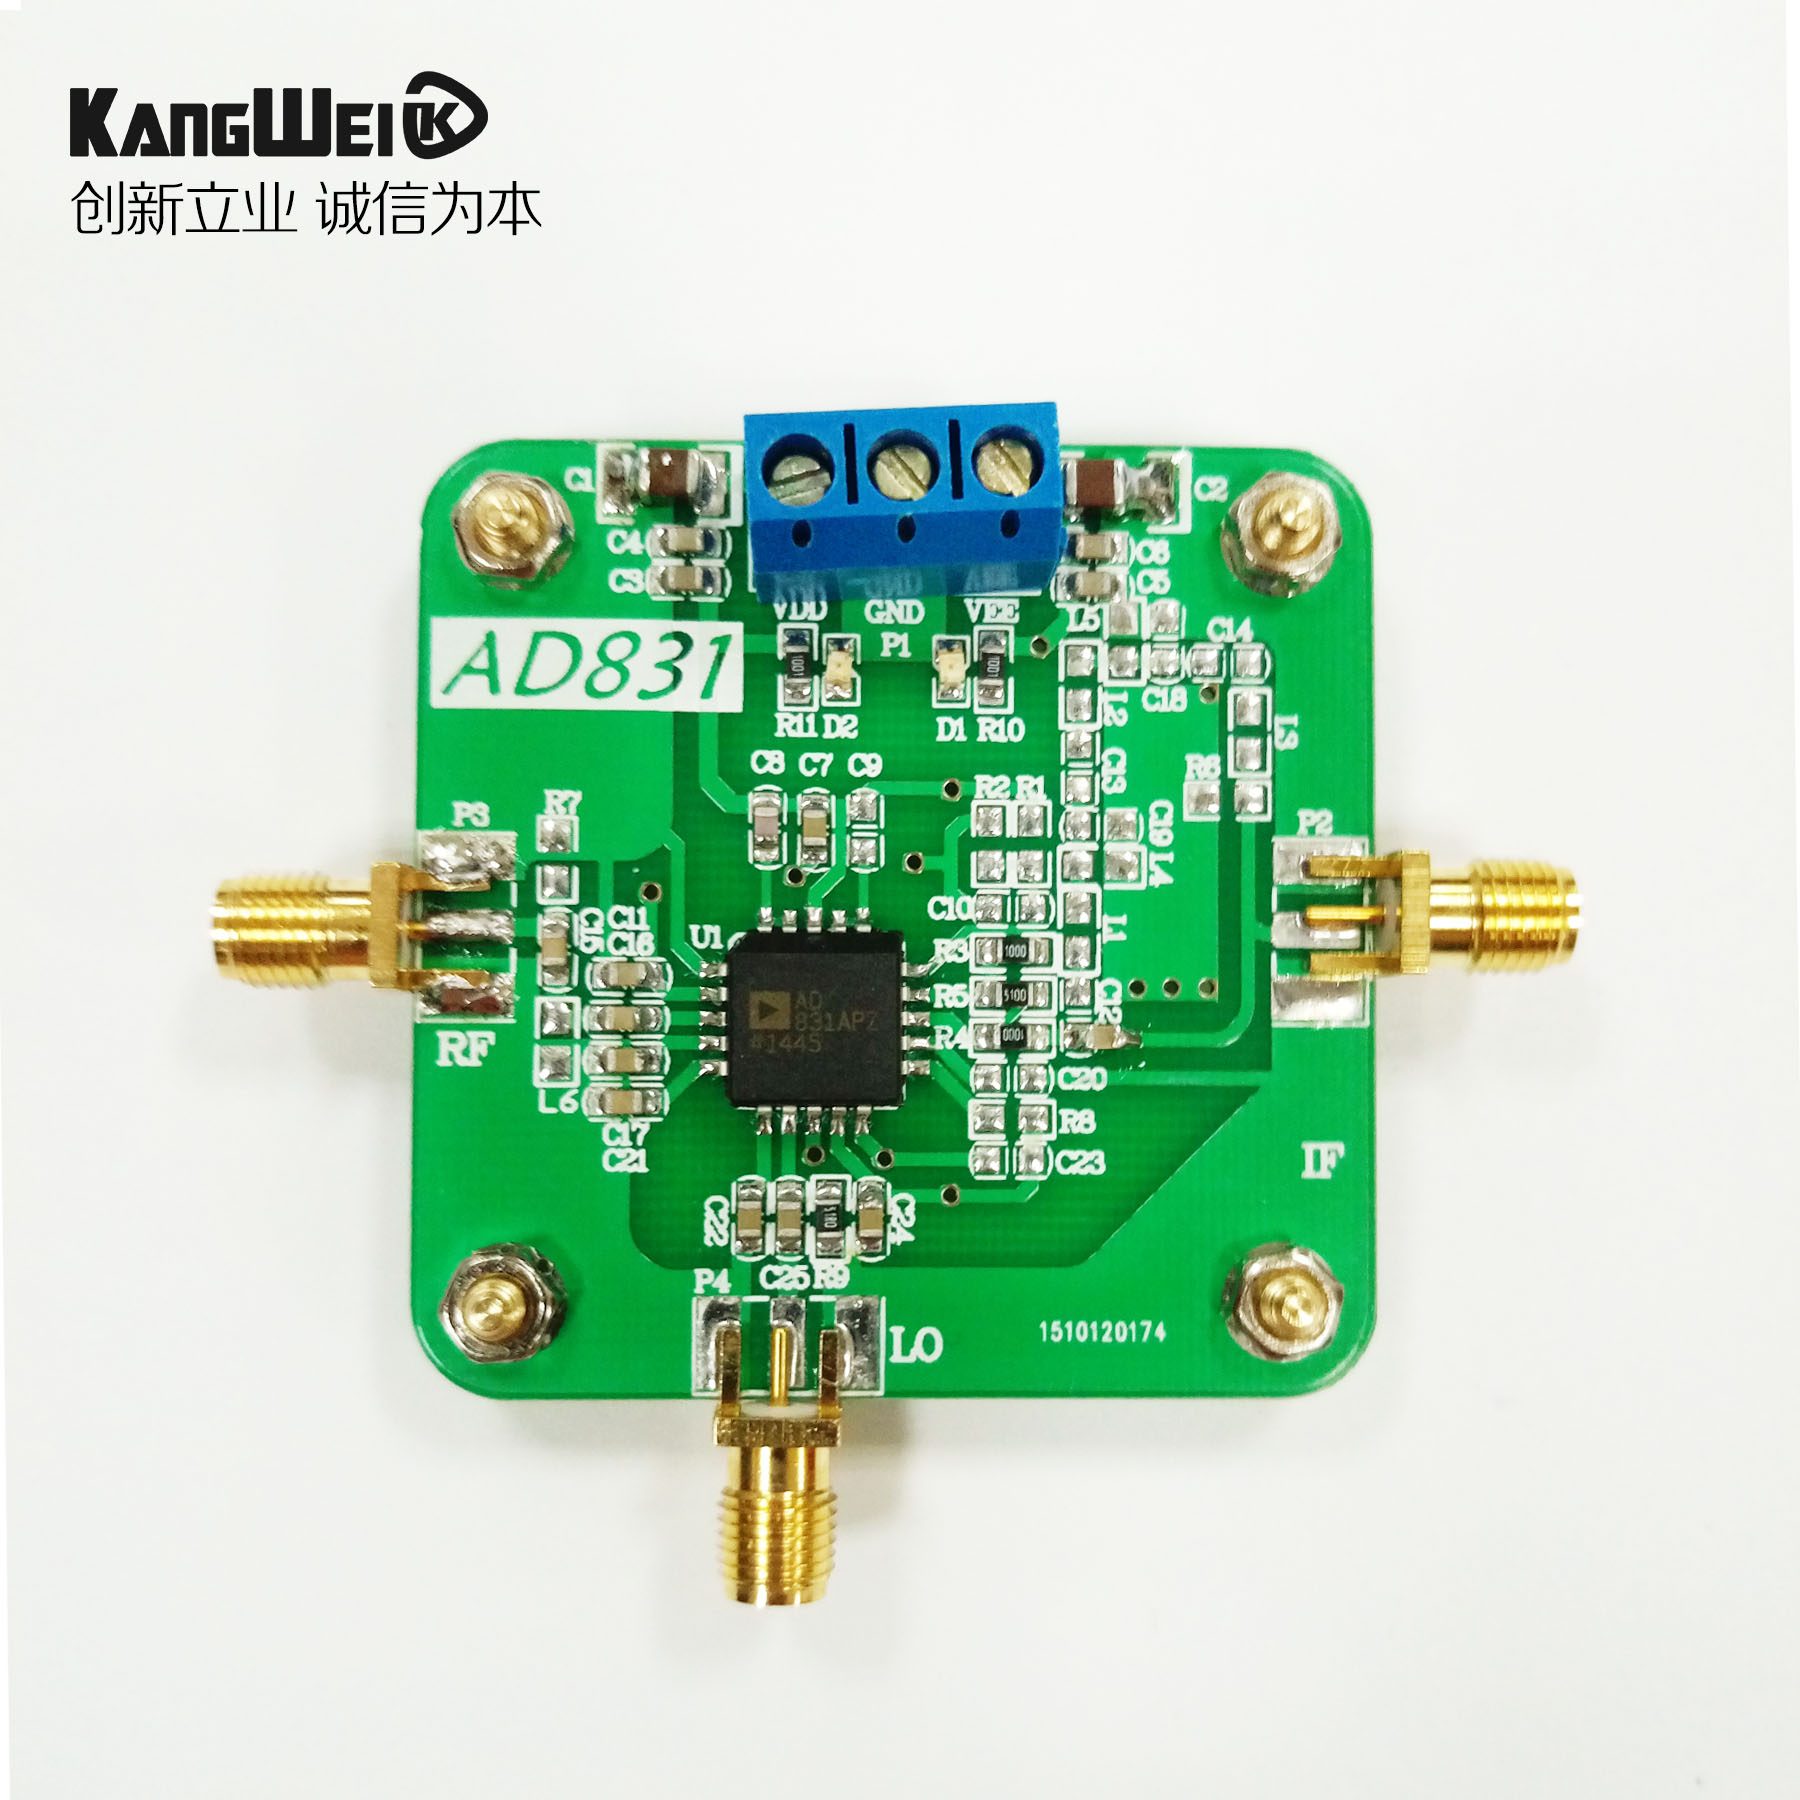 AD831 High Frequency RF Mixer Inverter